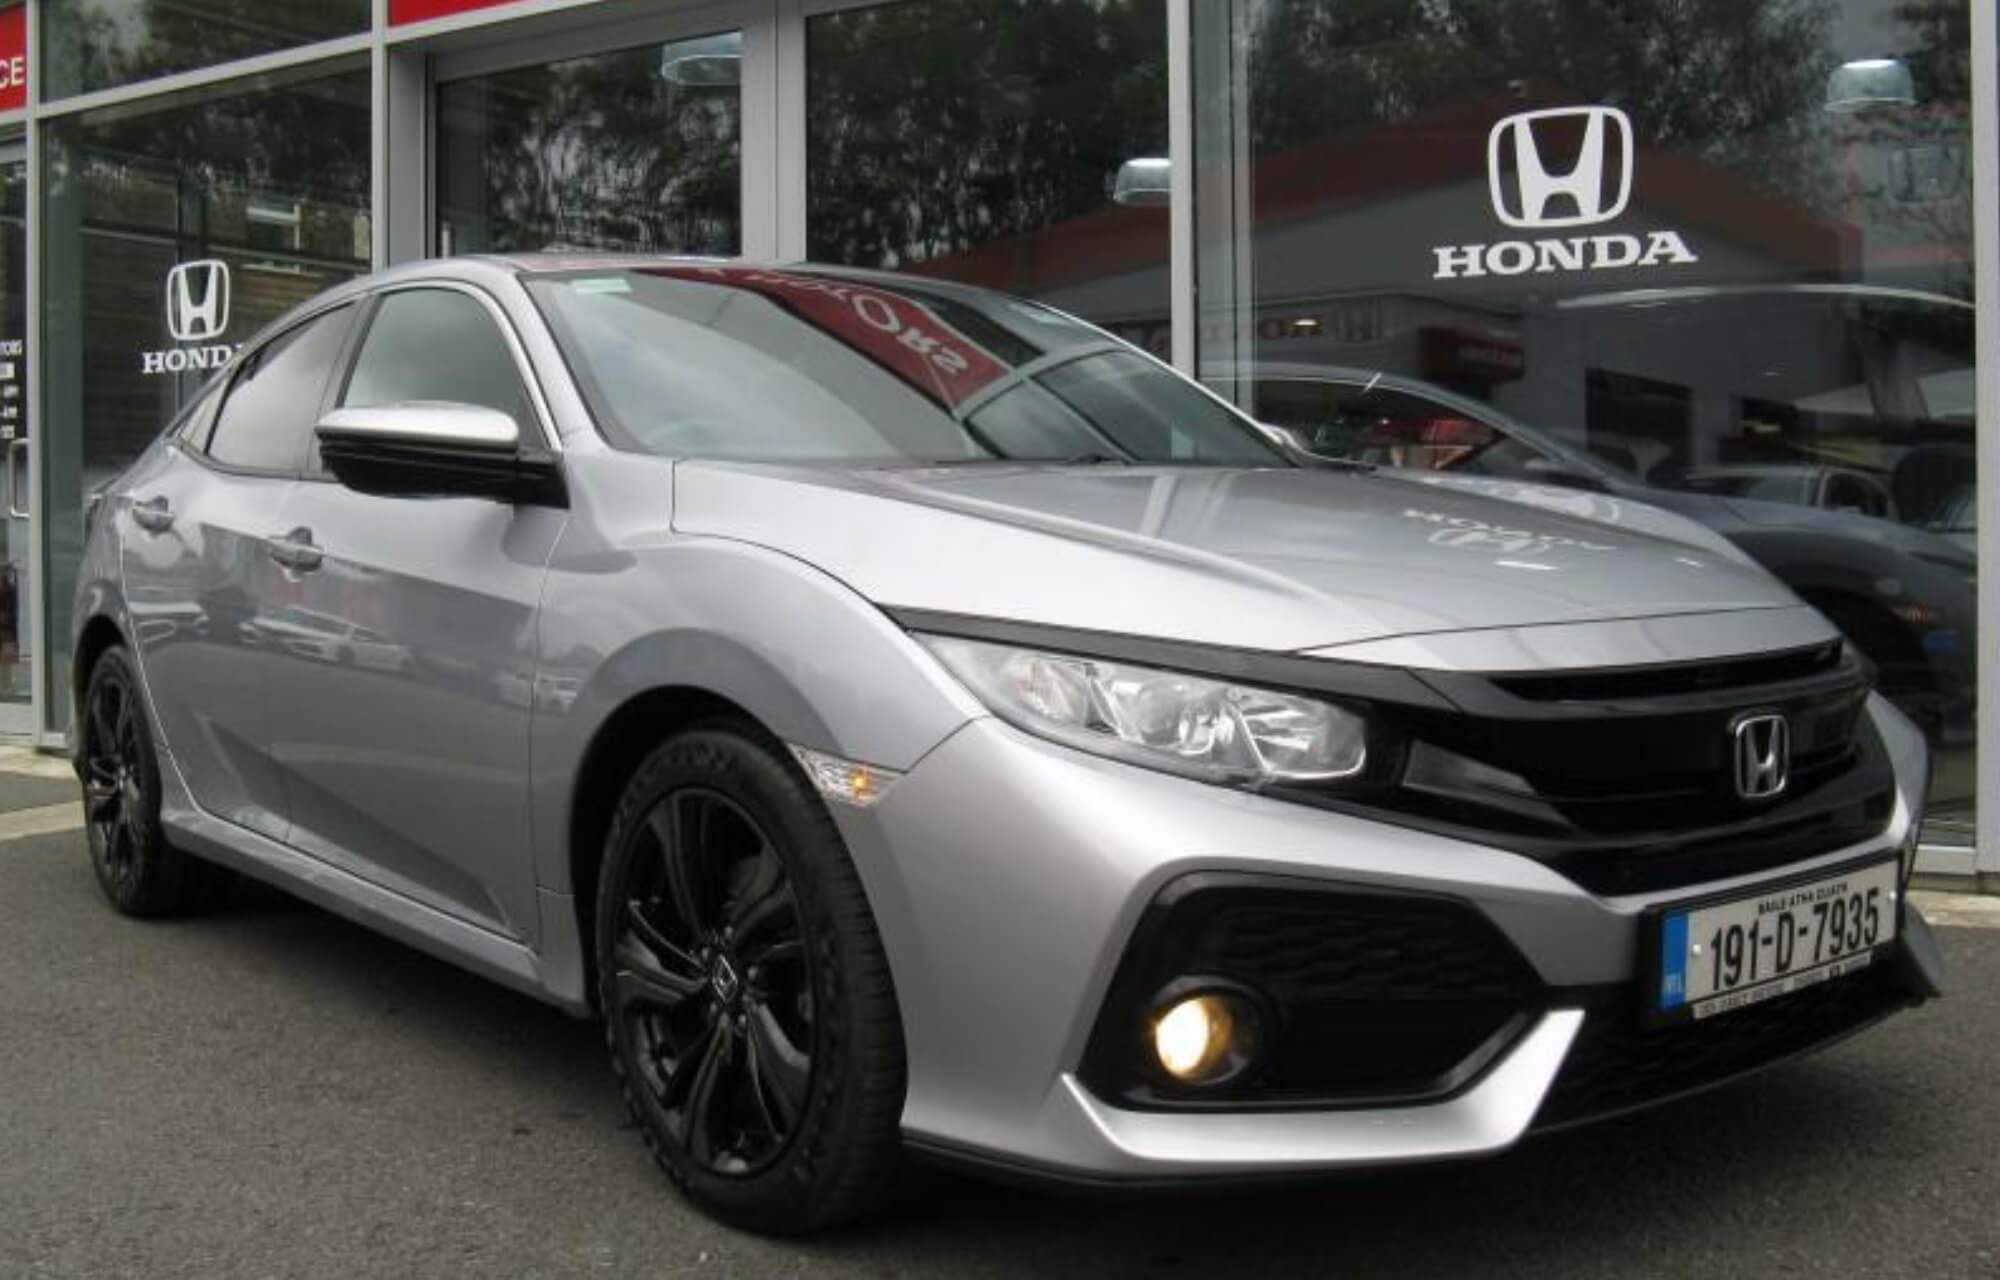 2019 Honda Ex-Demonstrator Models available at Des D'Arcy Motors